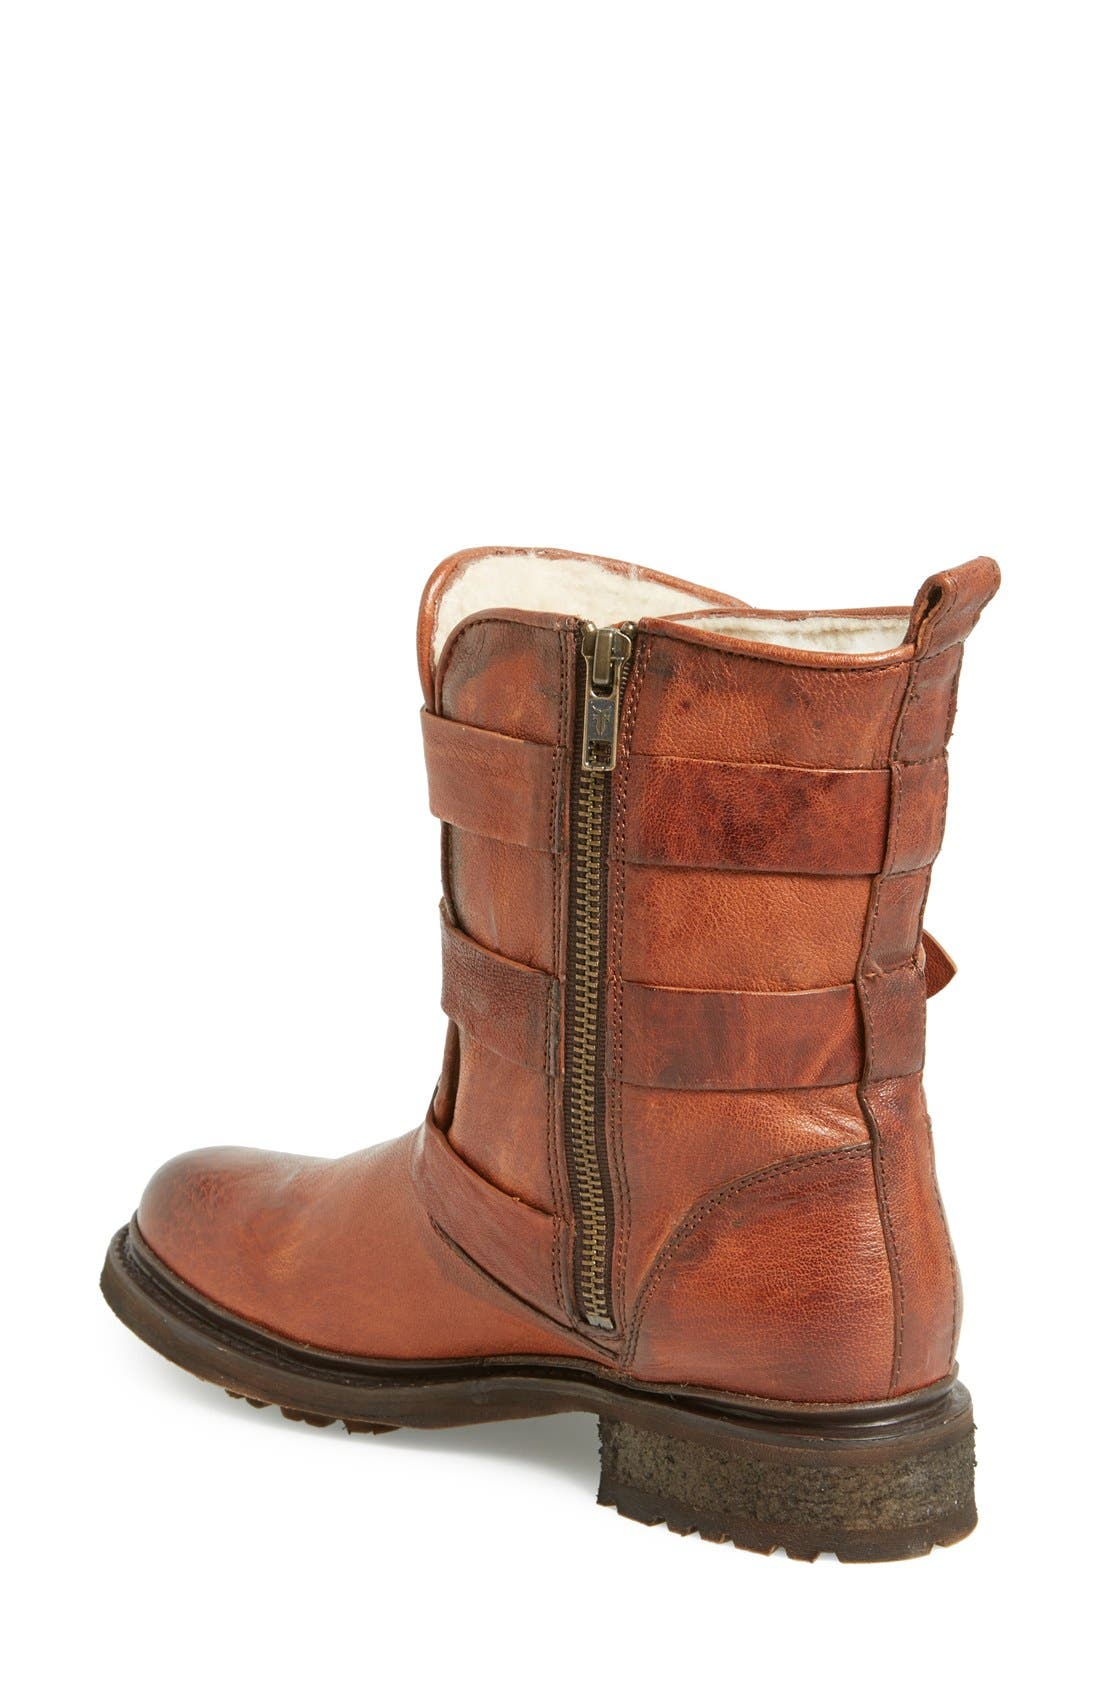 Alternate Image 2  - Frye 'Valerie' Shearling Lined Strappy Boot (Women)